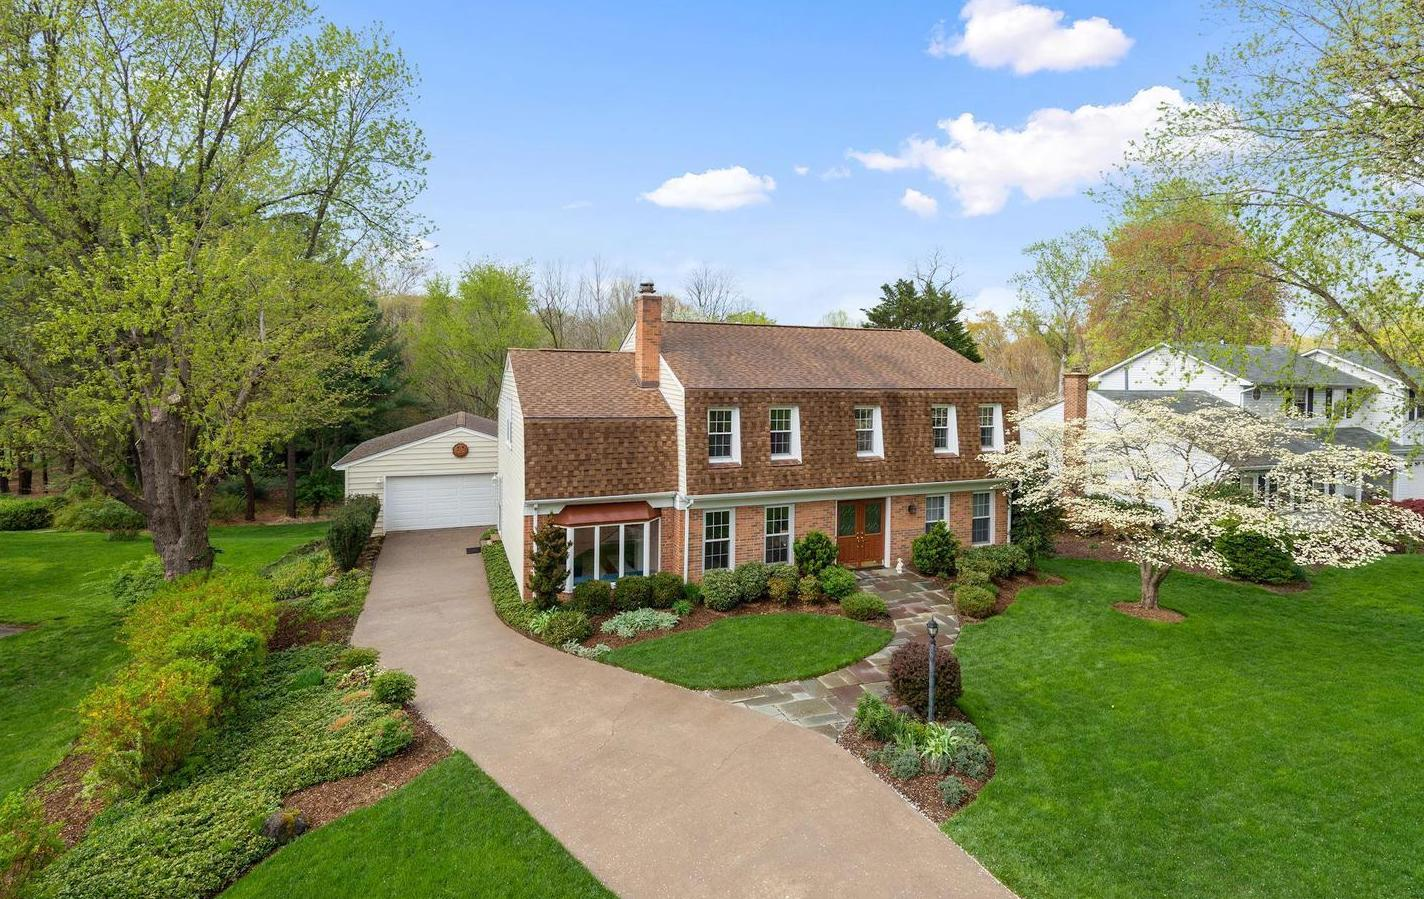 Beautiful Vienna Home Sells for $169k Over List Price